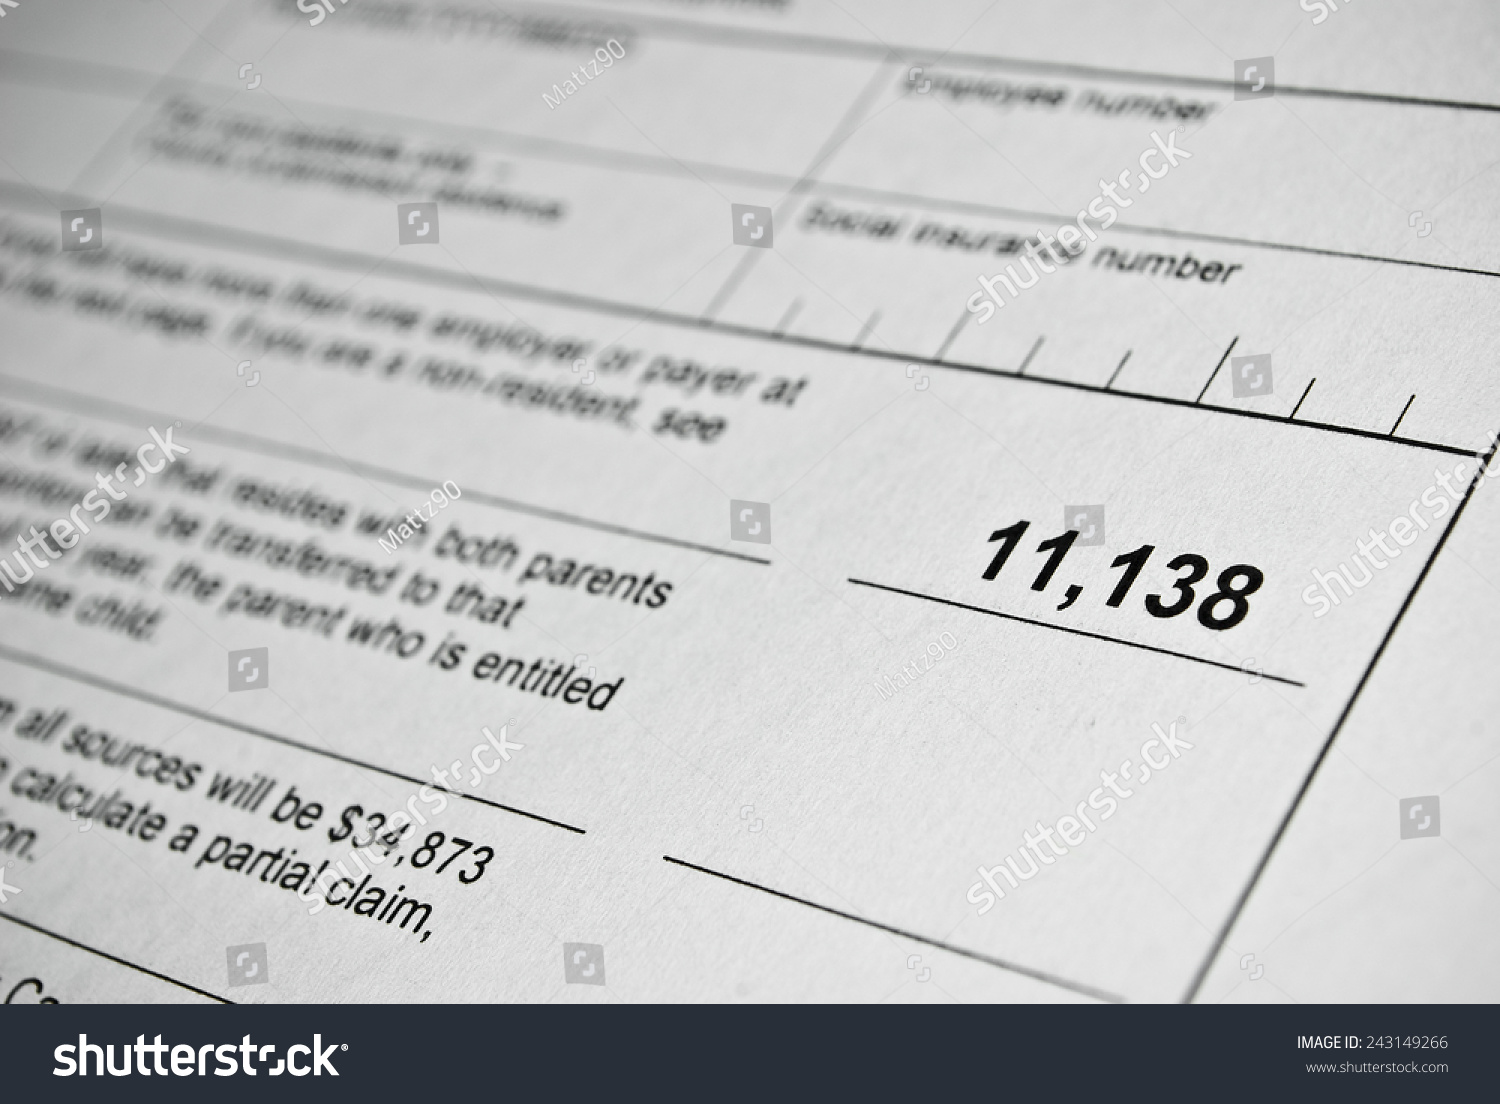 Canadian Tax Form Personal Income Tax Form Used In Canada Canadian Tax Form  Personal Income Tax